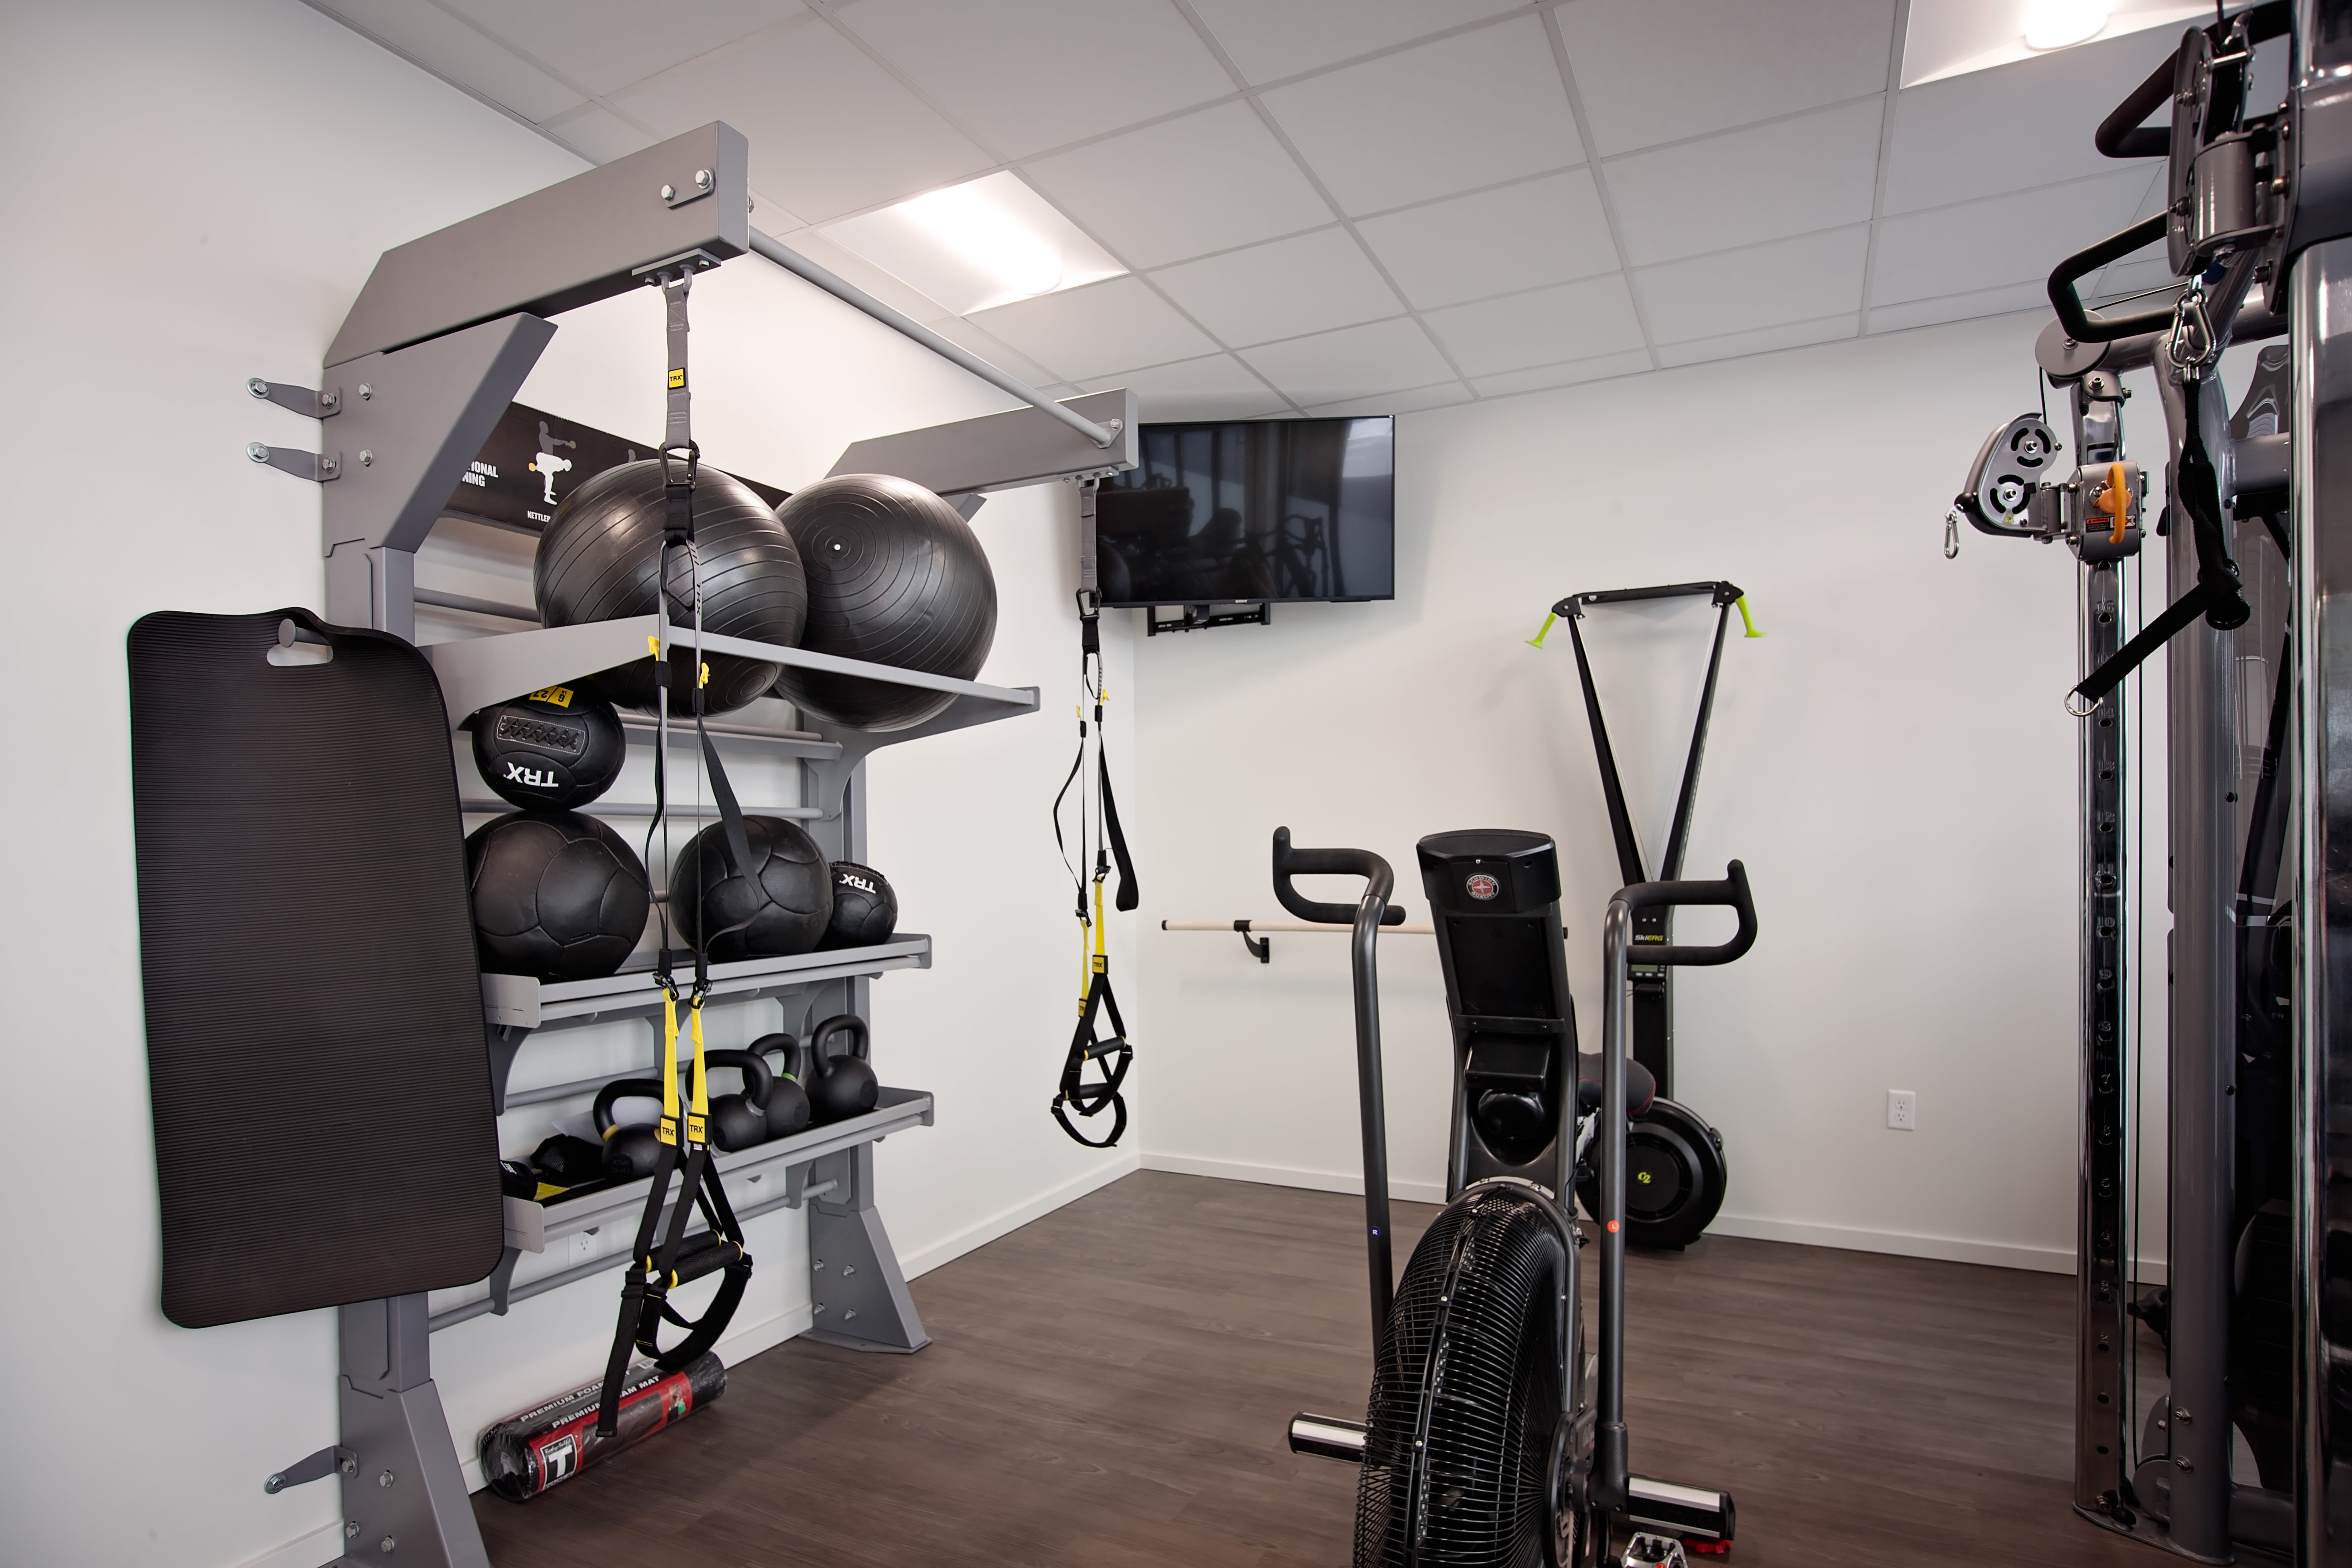 Equipment featured inside the fitness center at Grant Park Village in Portland